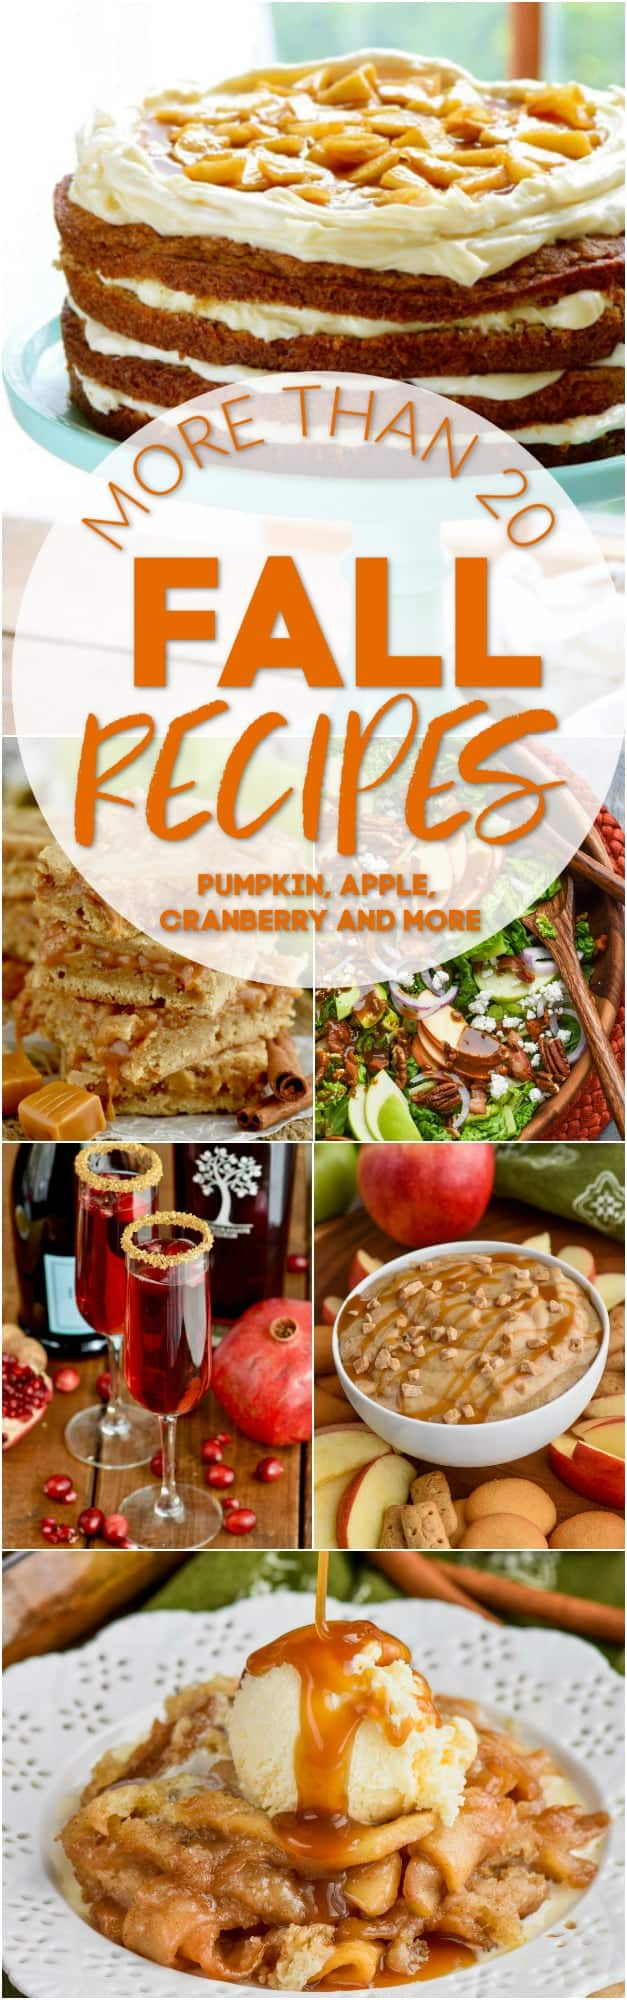 More Than 20 Fall Recipes